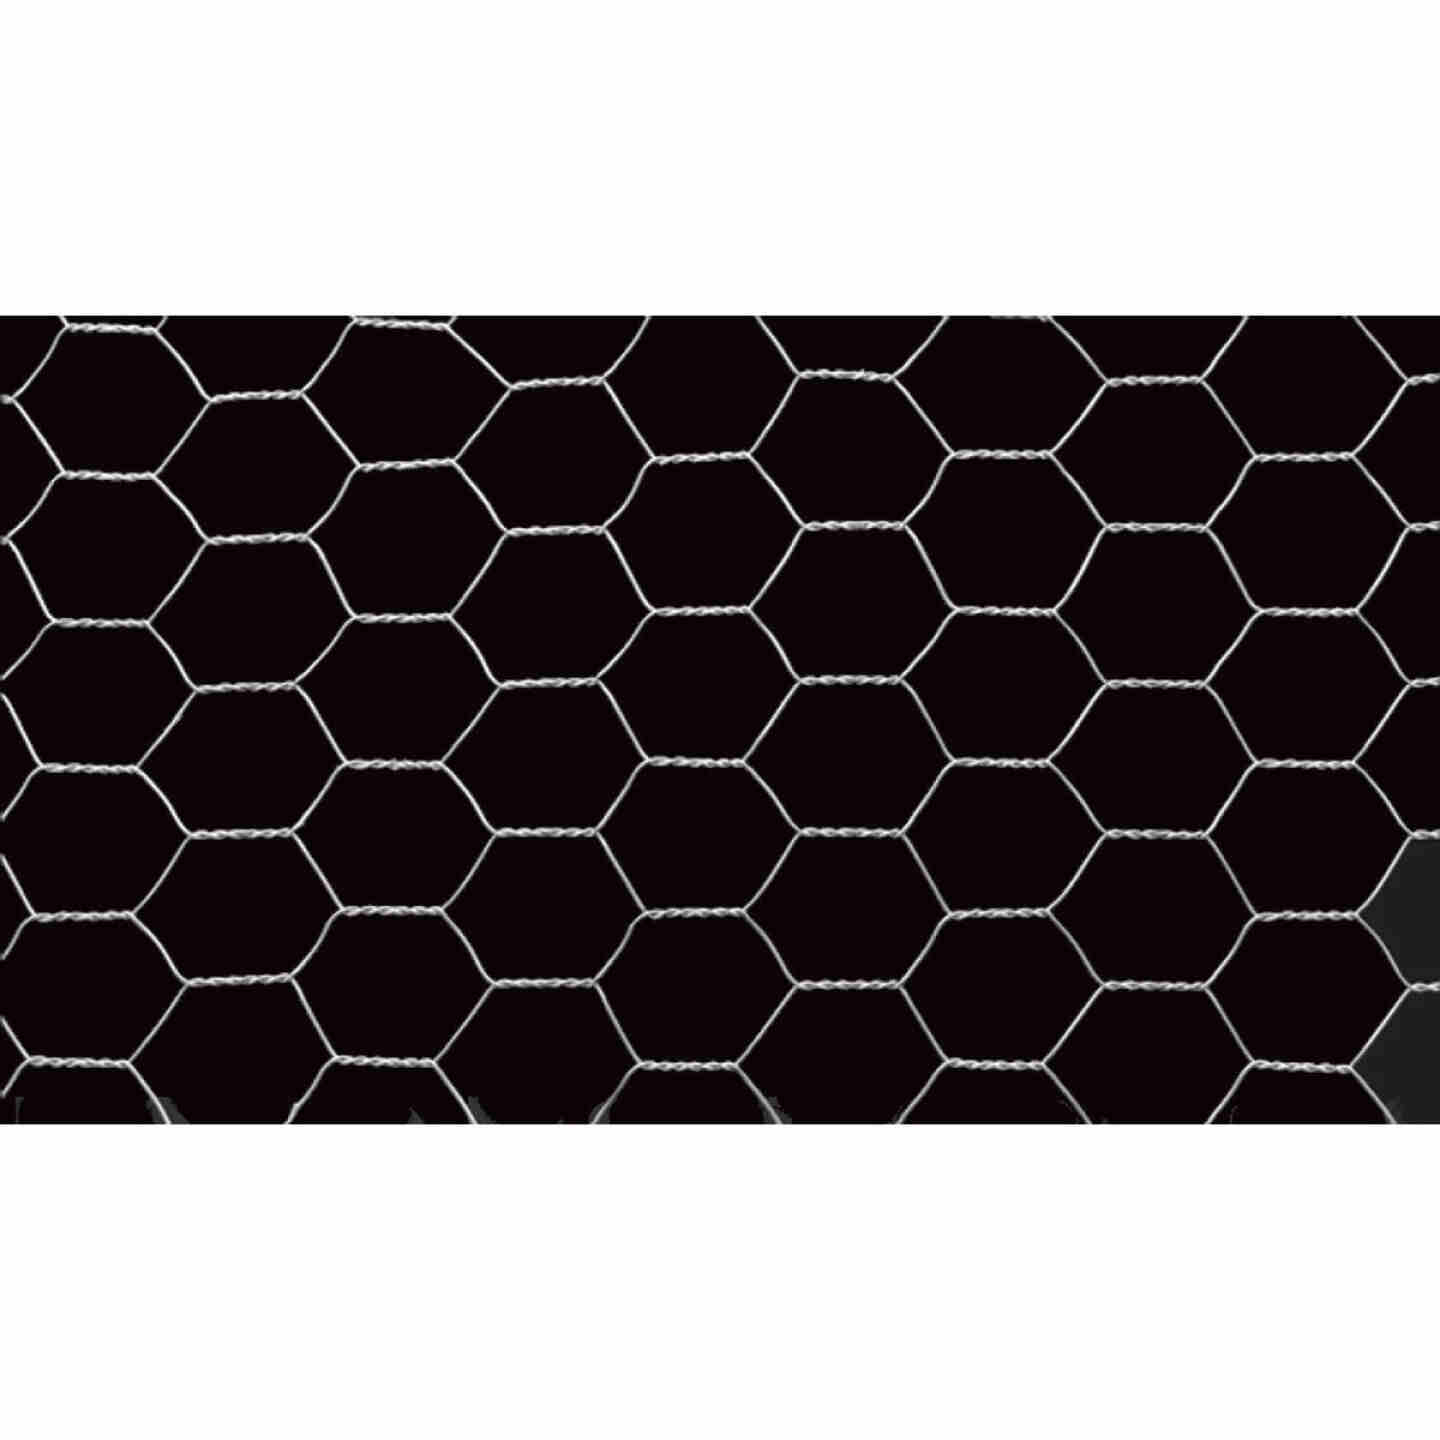 Do it 2 In. x 24 In. H. x 150 Ft. L. Hexagonal Wire Poultry Netting Image 3